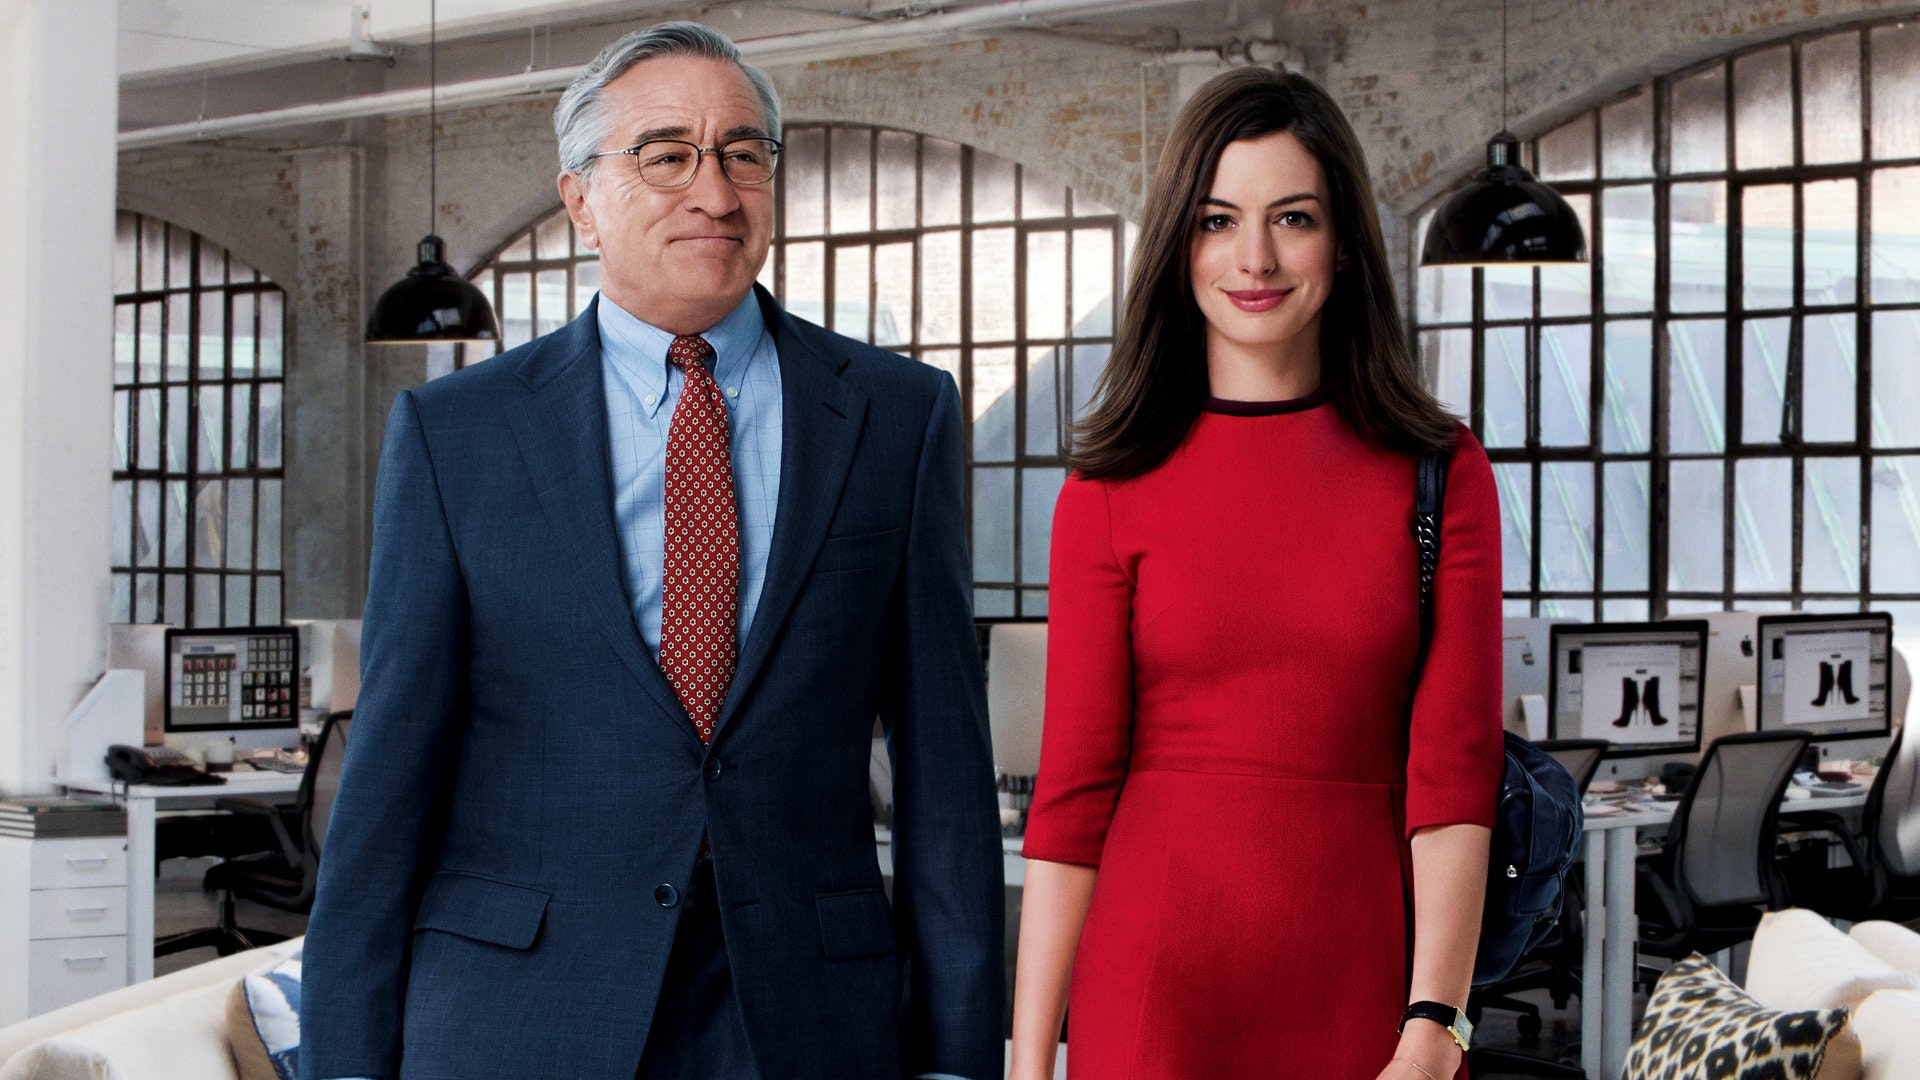 The Intern Soundtrack